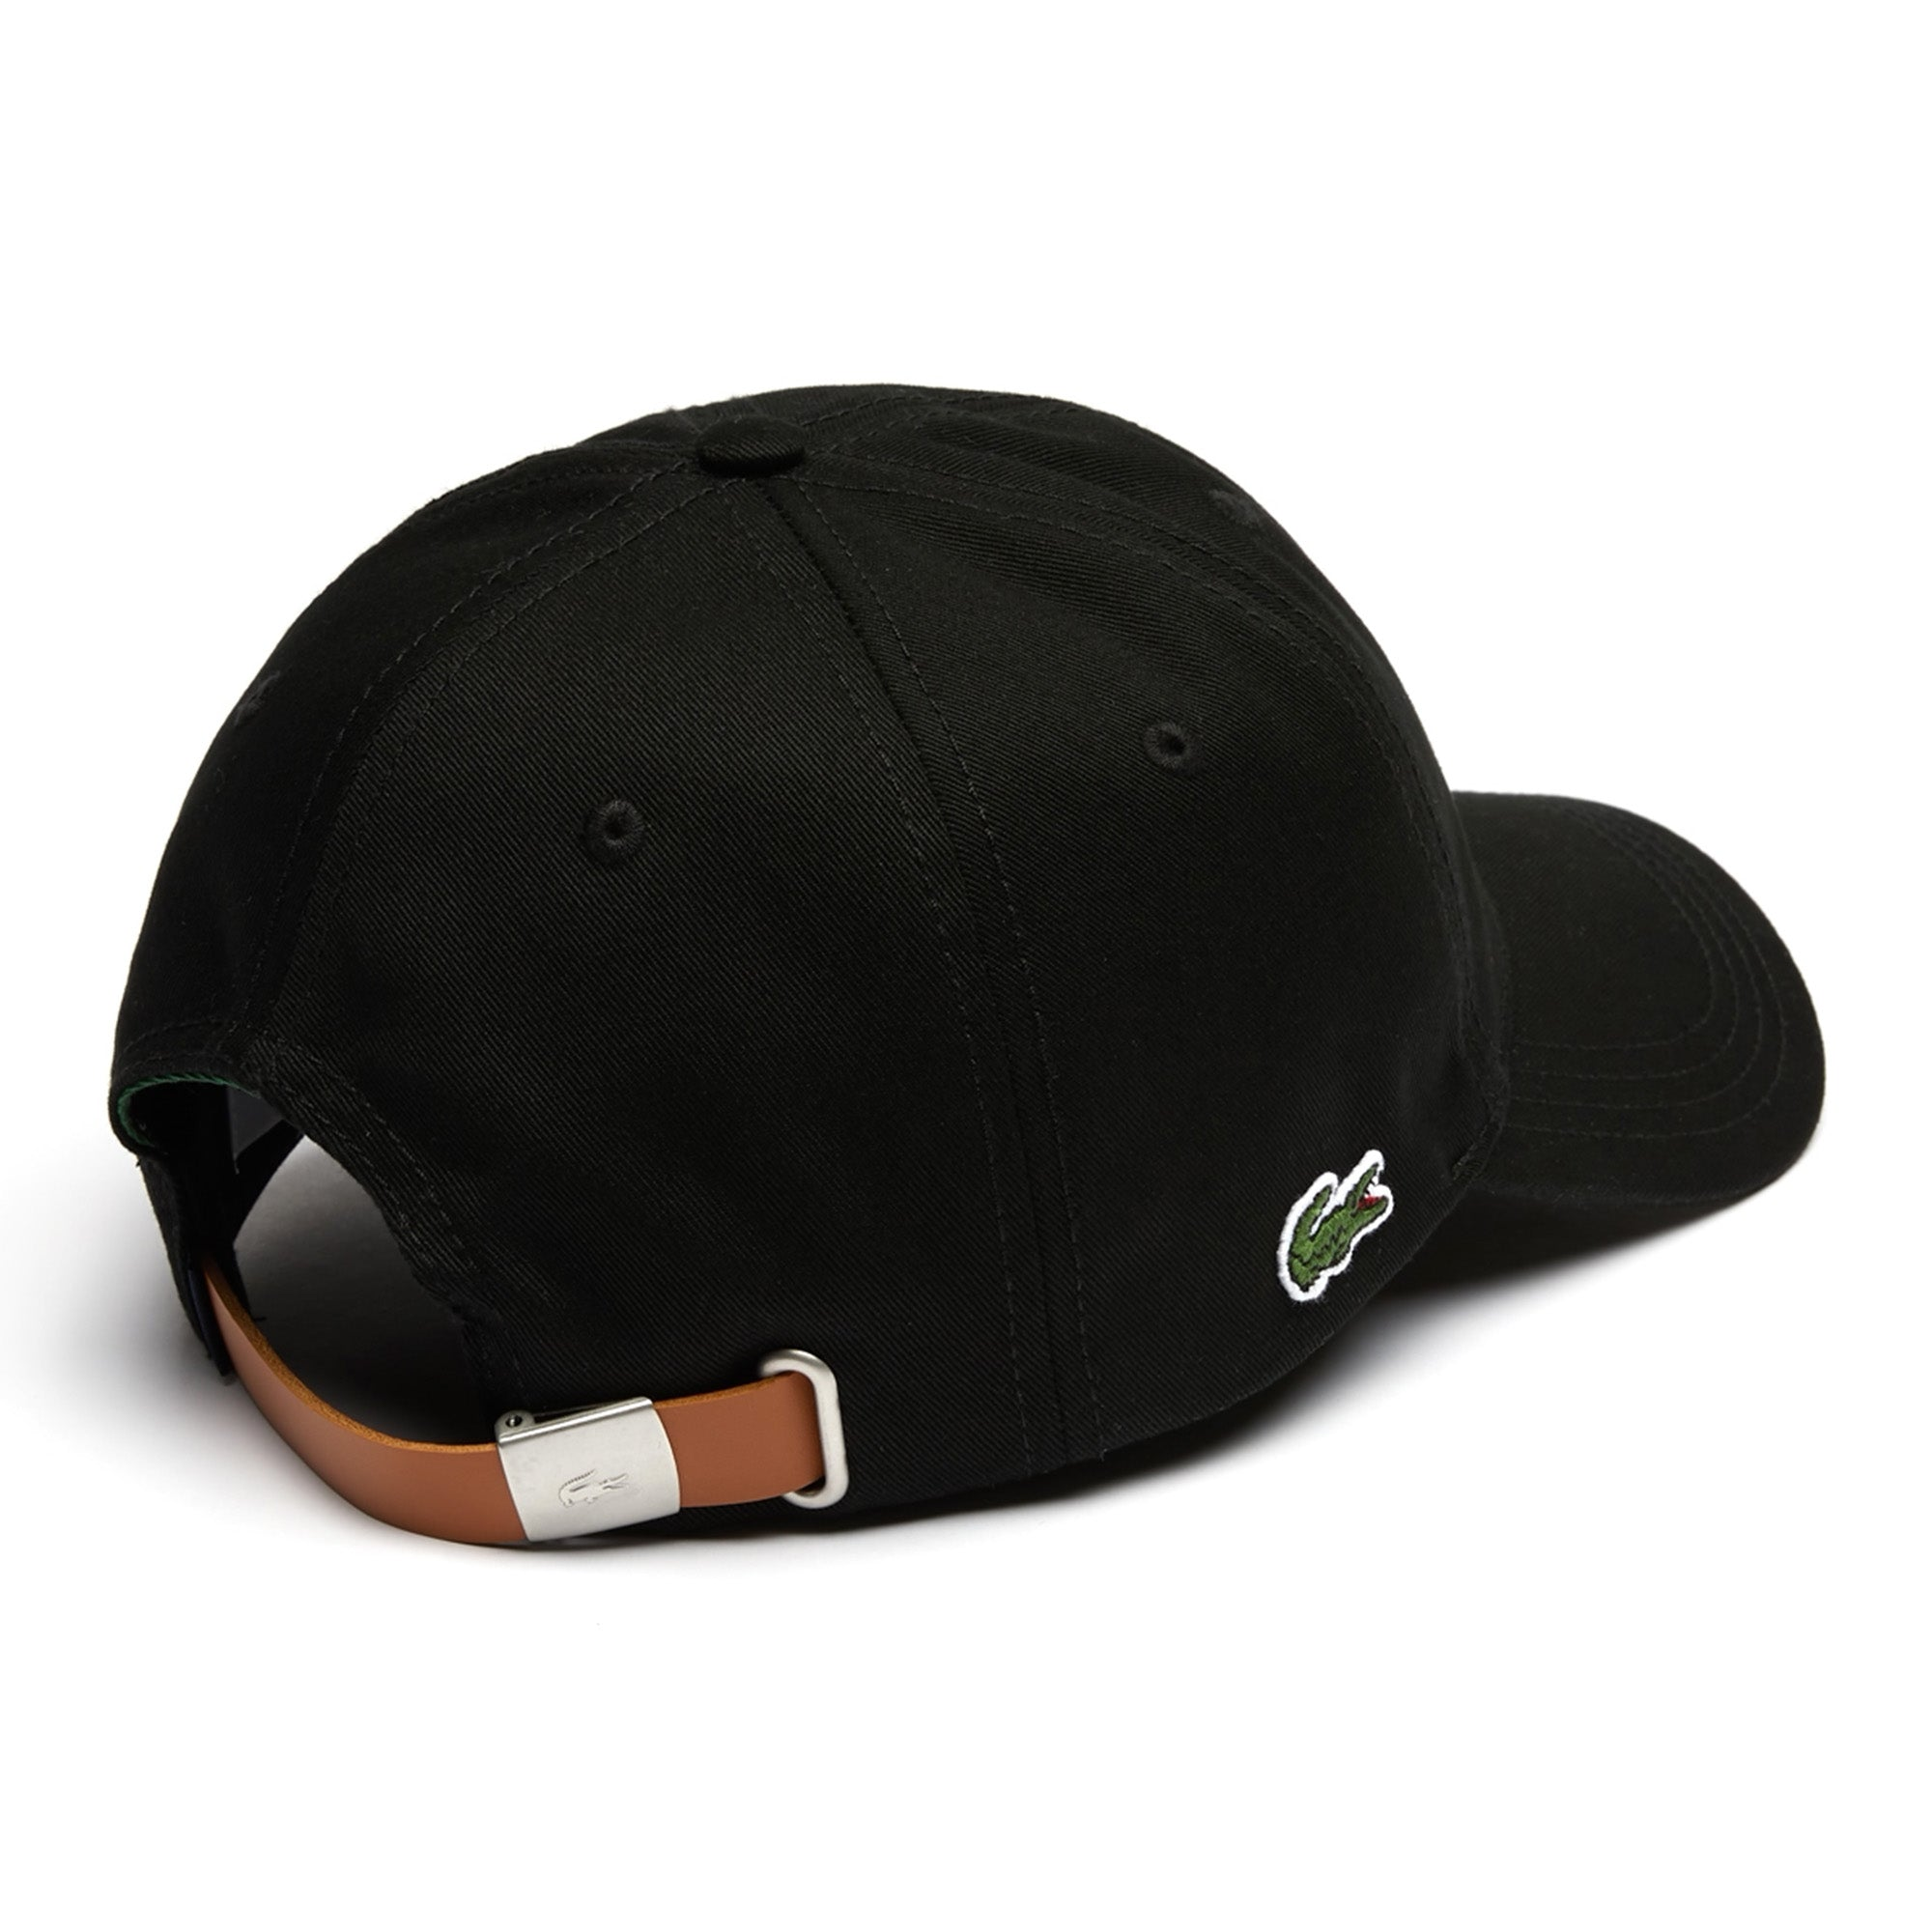 Lacoste Cotton Twill Cap RK4709